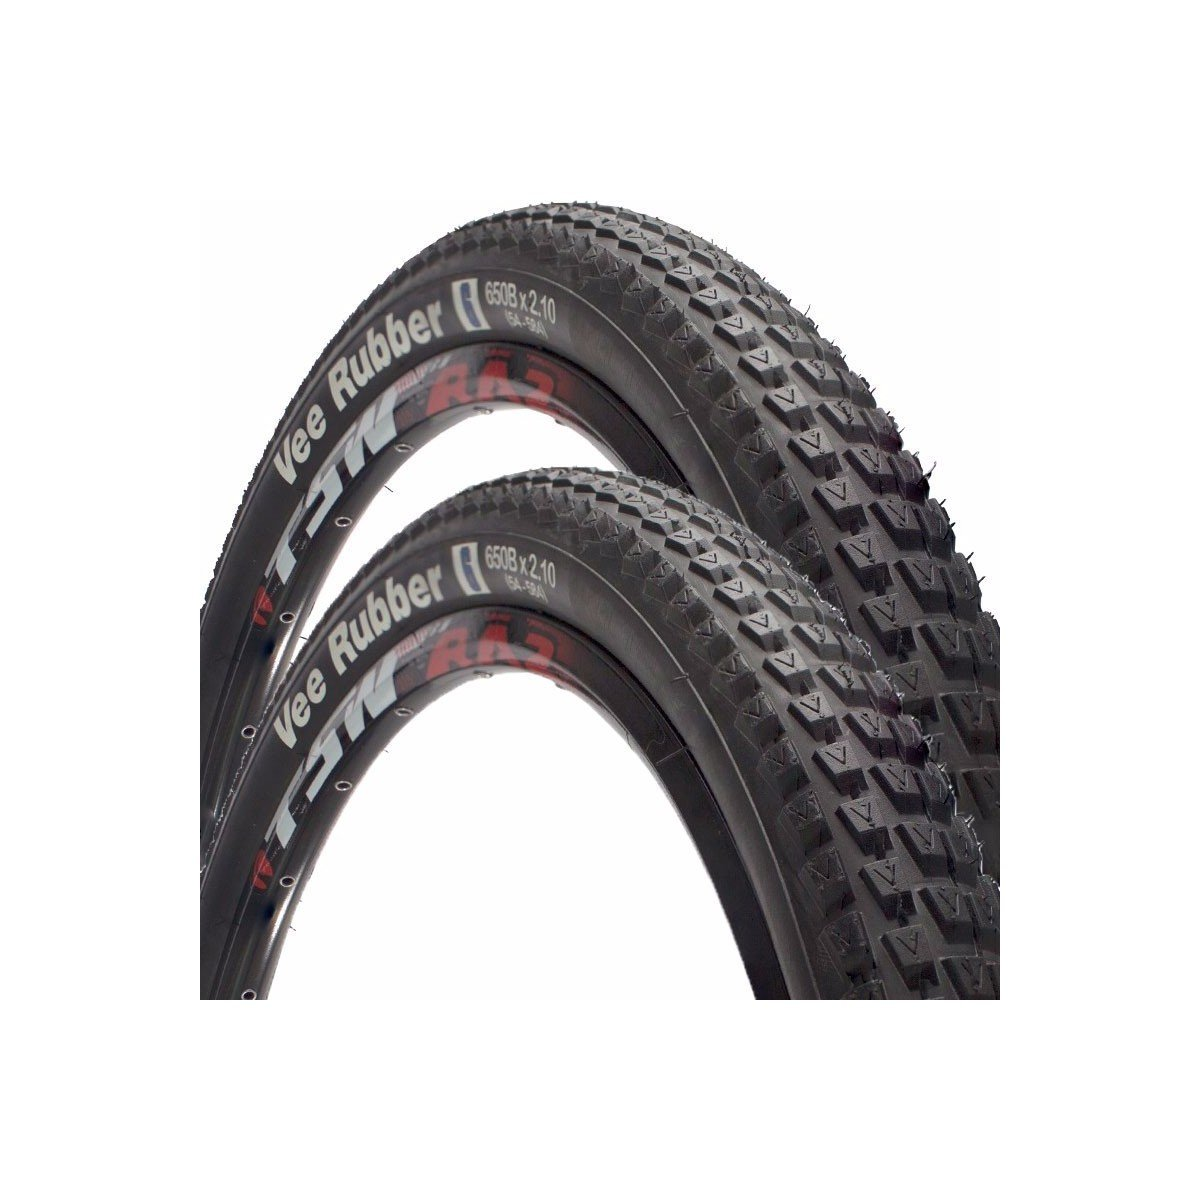 pneus para mountain bike